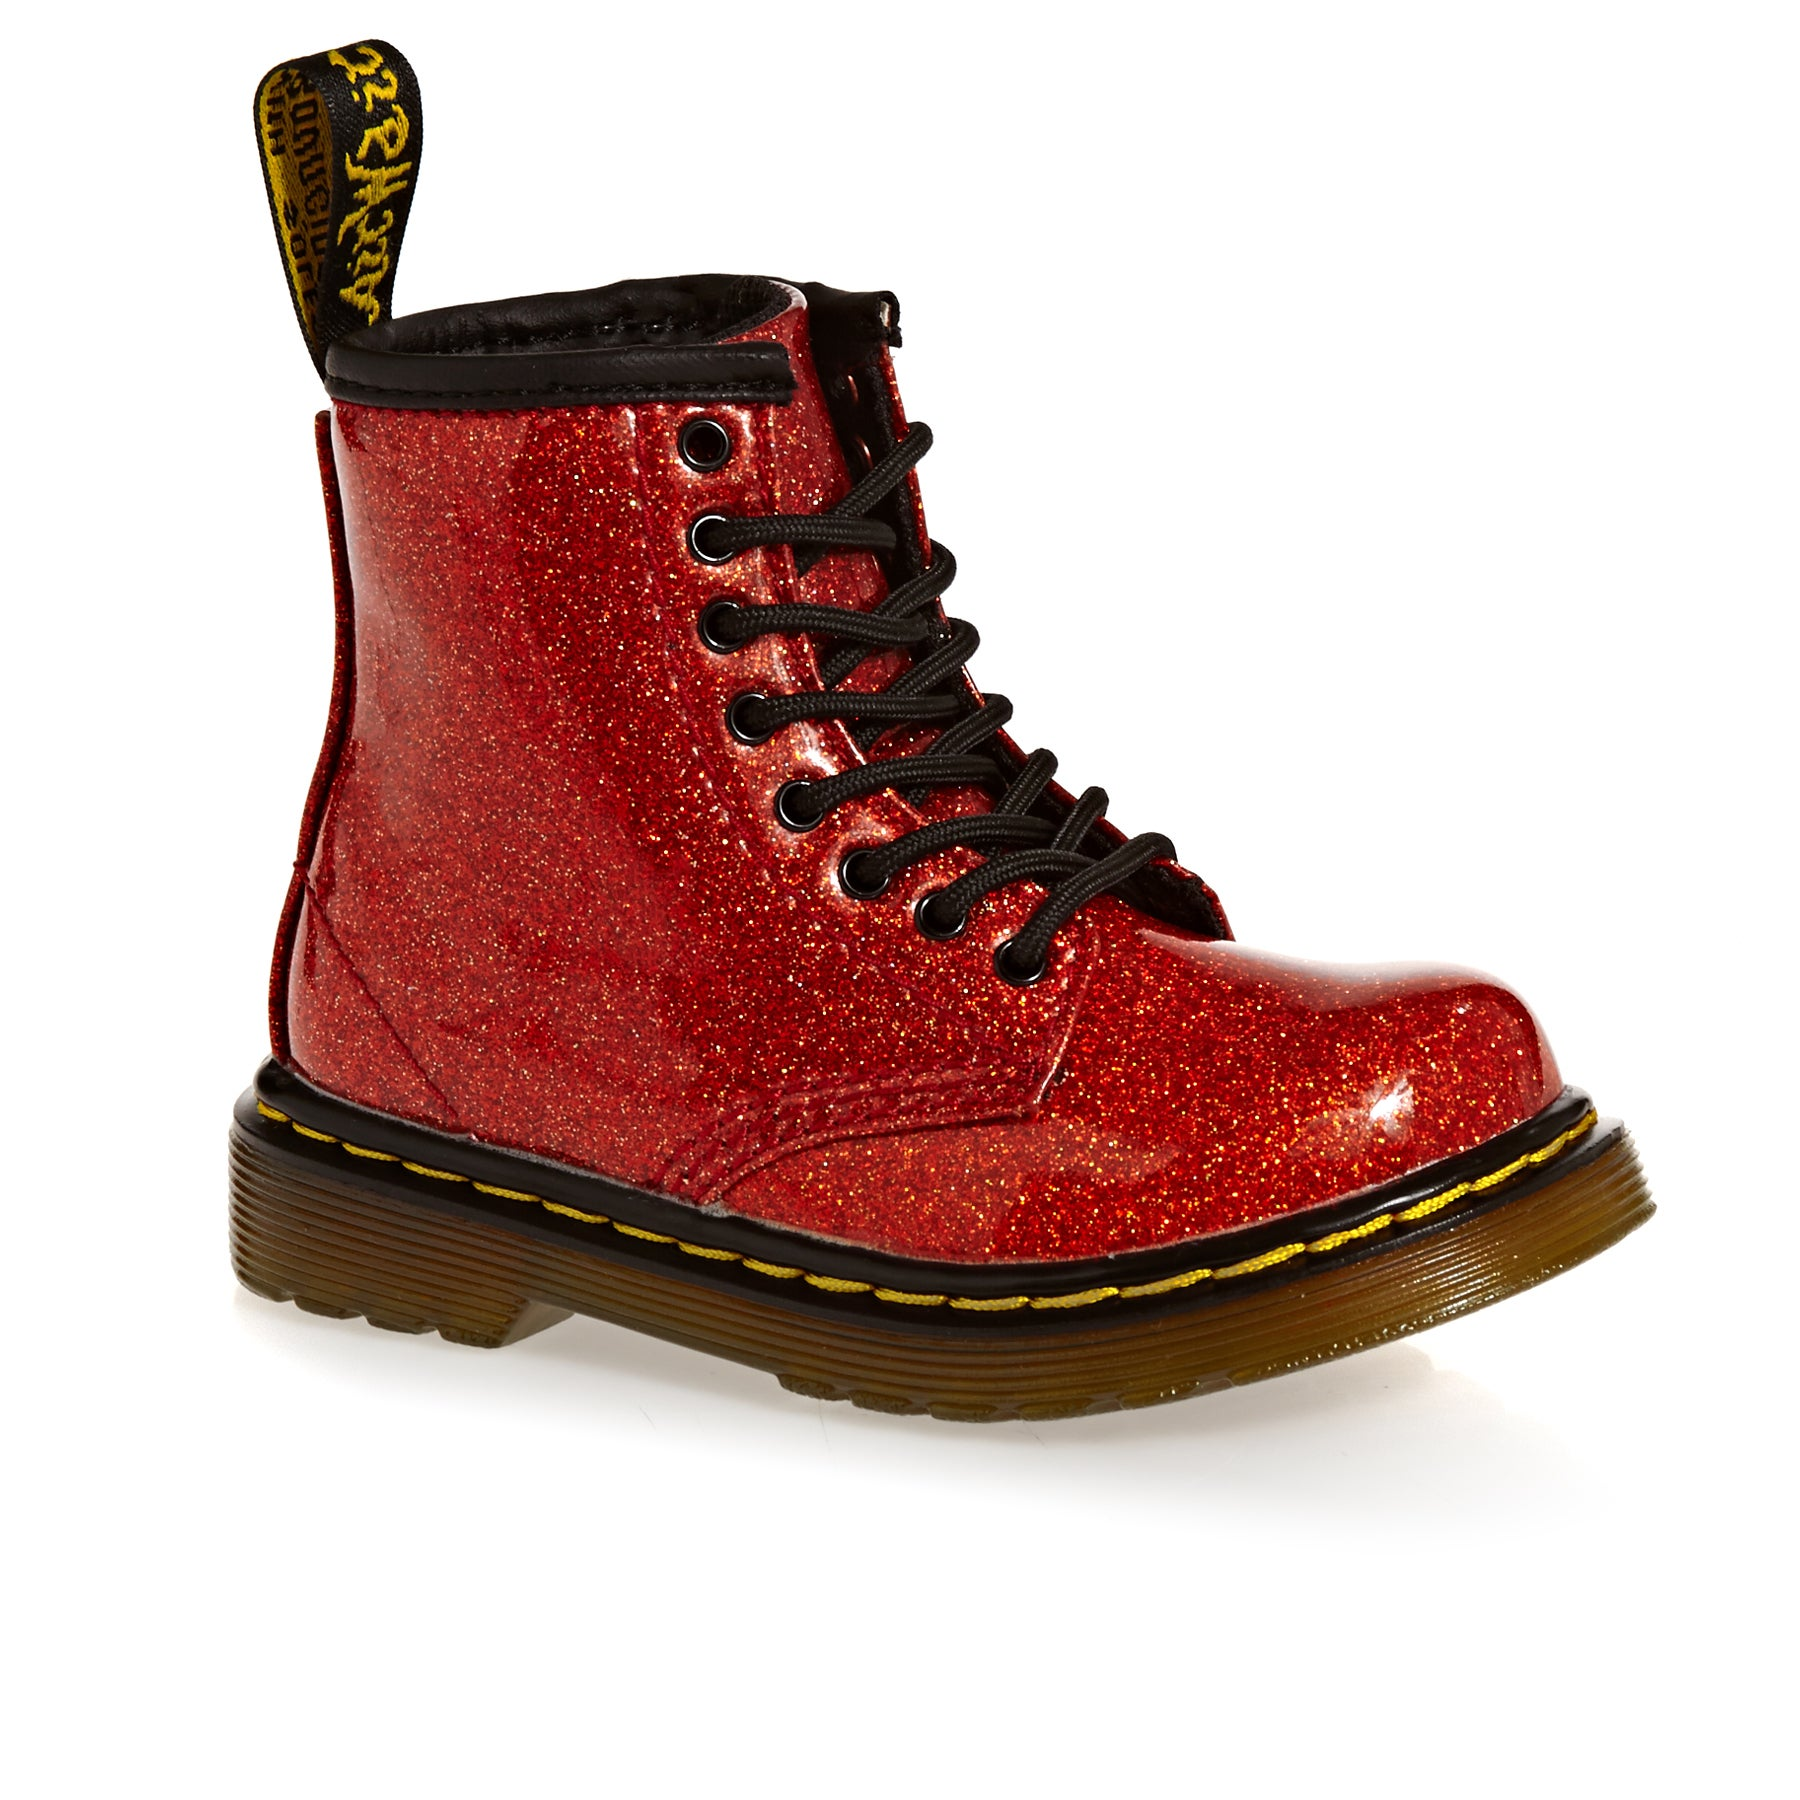 Bottes Enfant Dr Martens 1460 Glitter T - Red Multi Coated Glitter